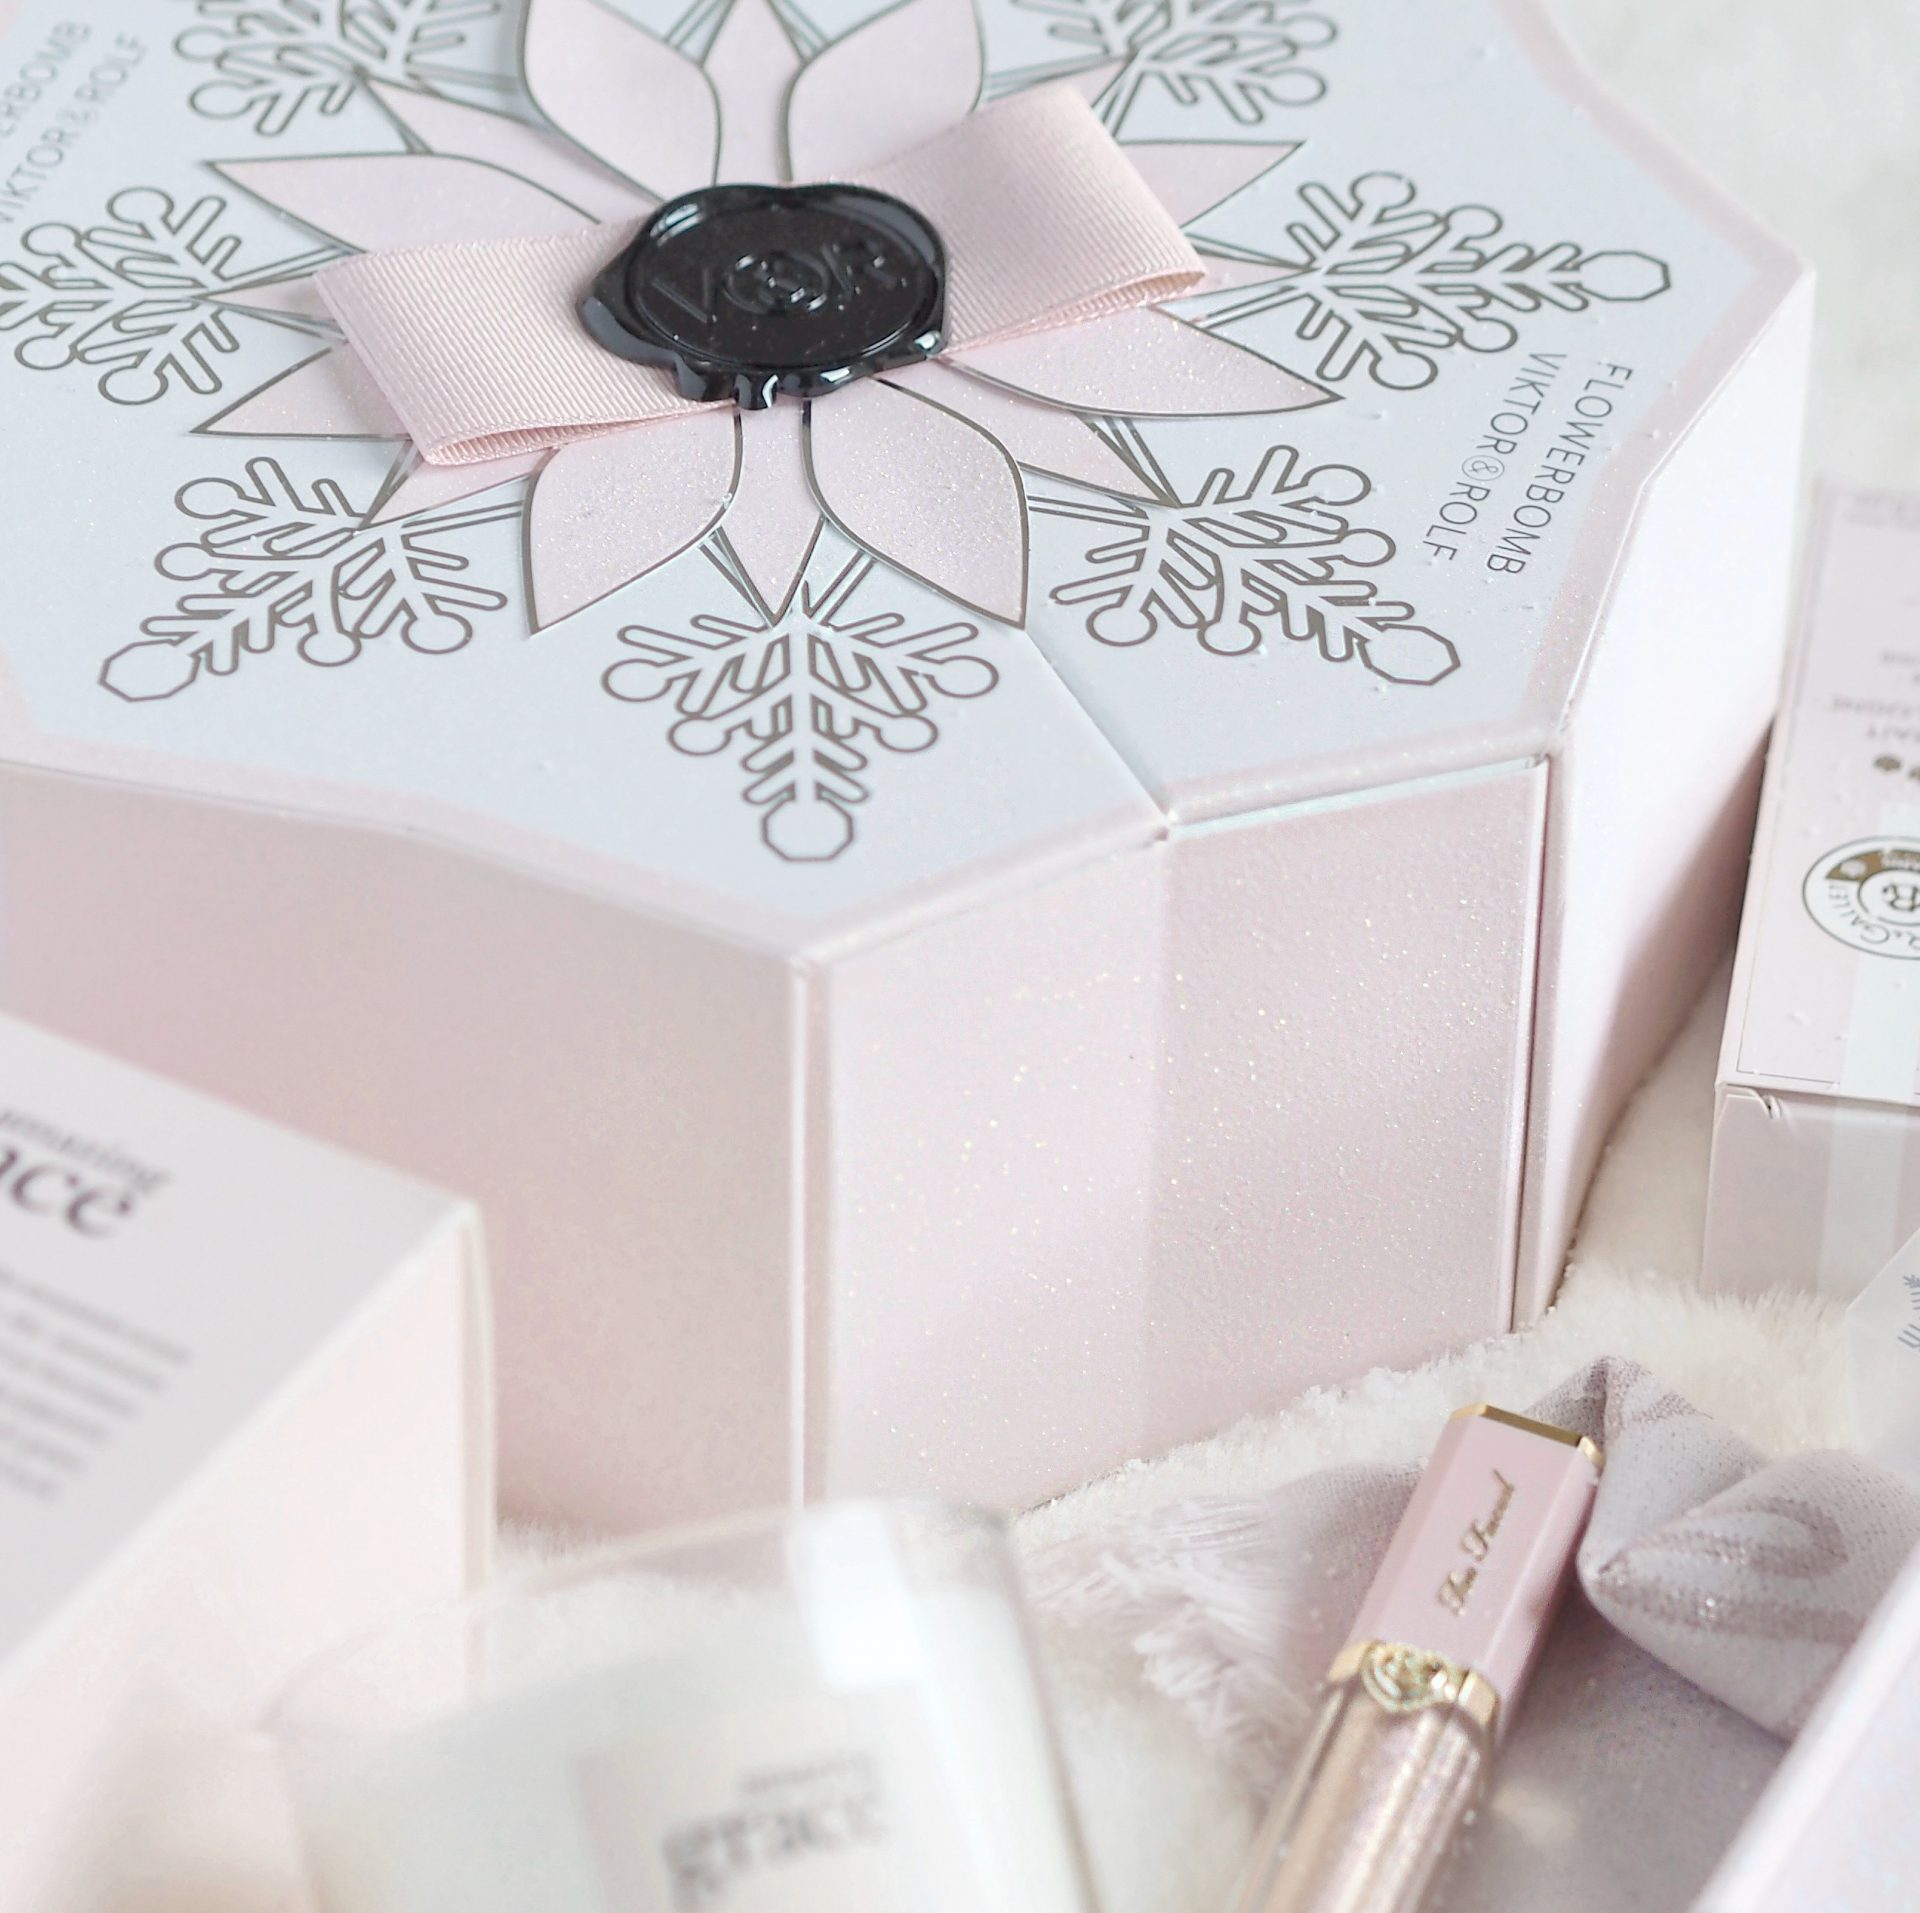 Viktor & Rolf Flowerbomb | Perfectly Pretty Christmas Gift Ideas